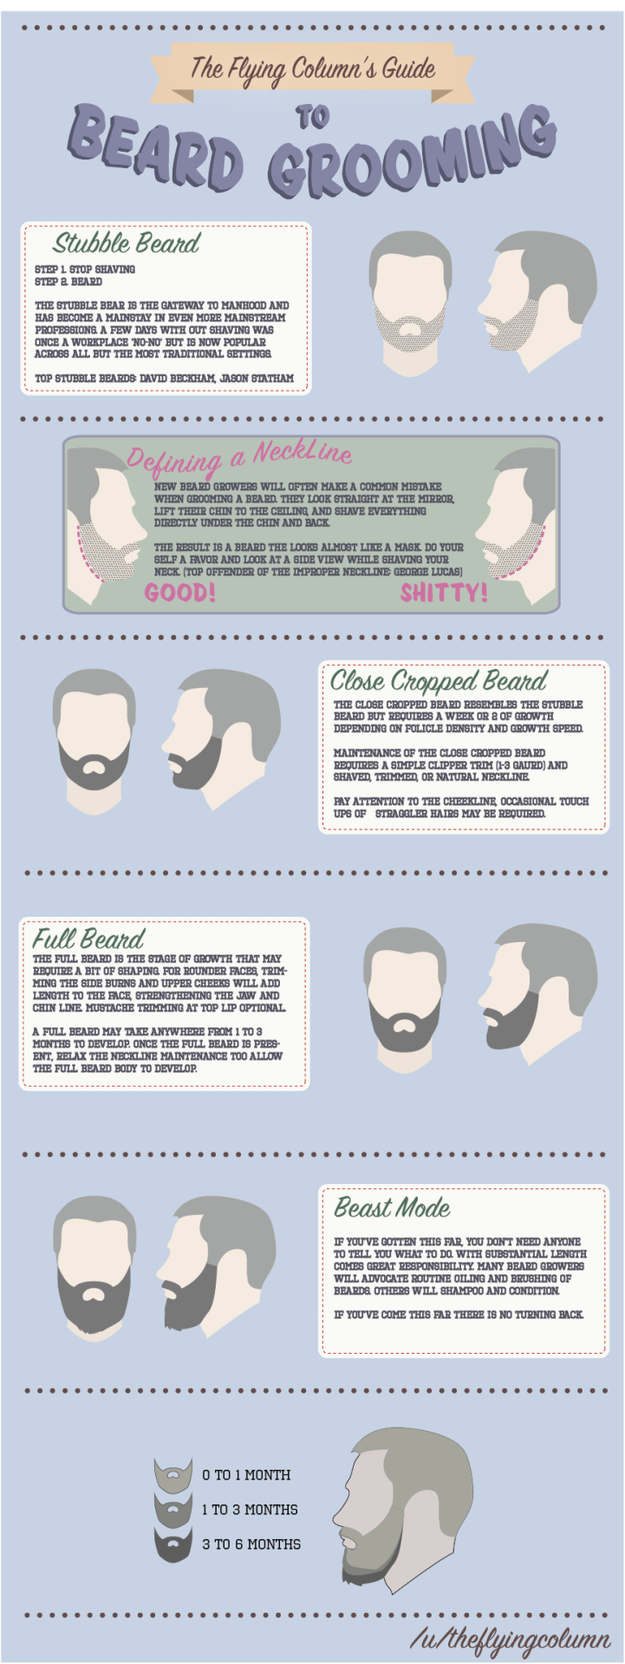 And here's how to get the best beard possible. #beardfashion